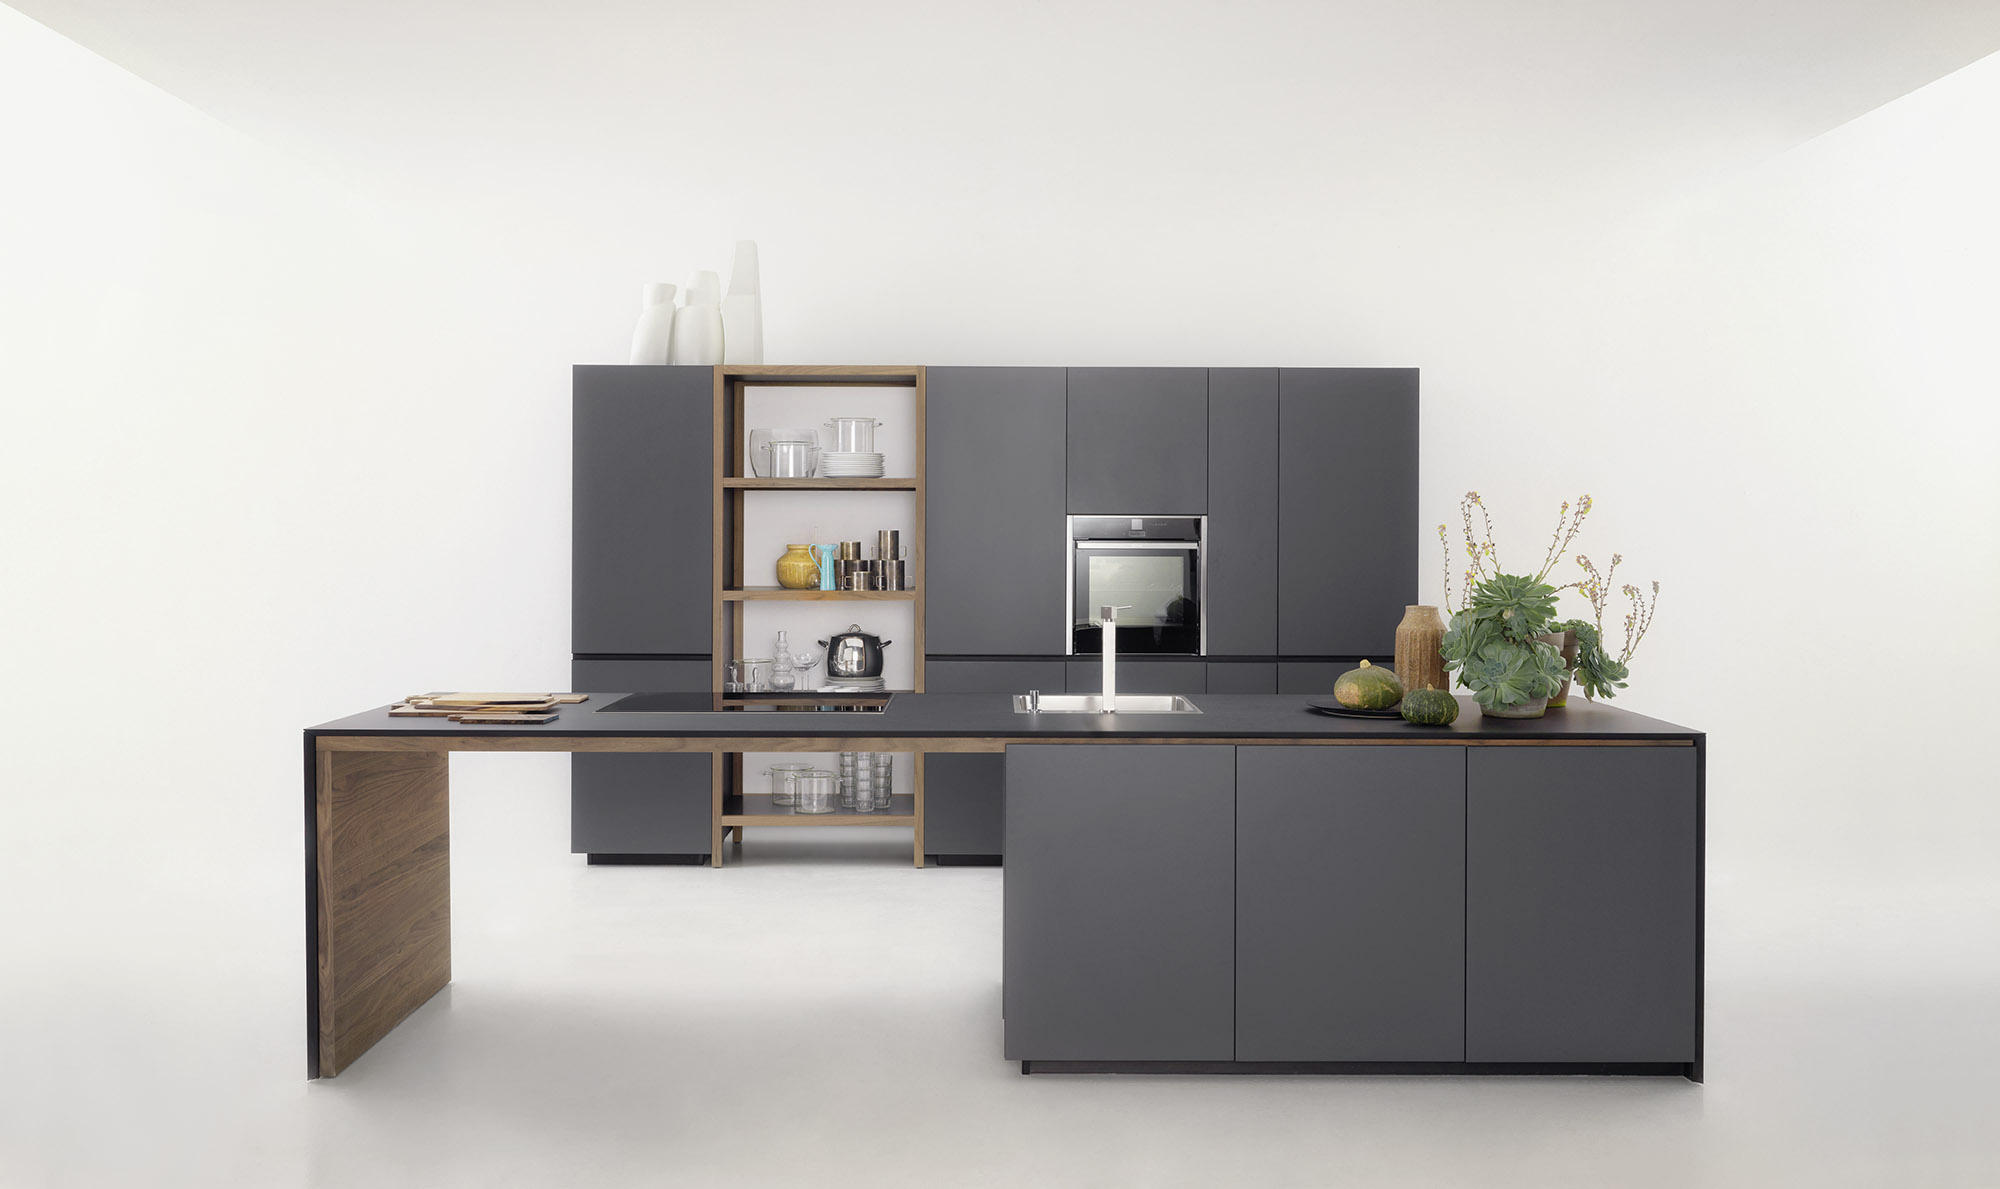 Forma mentis lacquered door island kitchens from valcucine architonic - Valcucine forma mentis ...